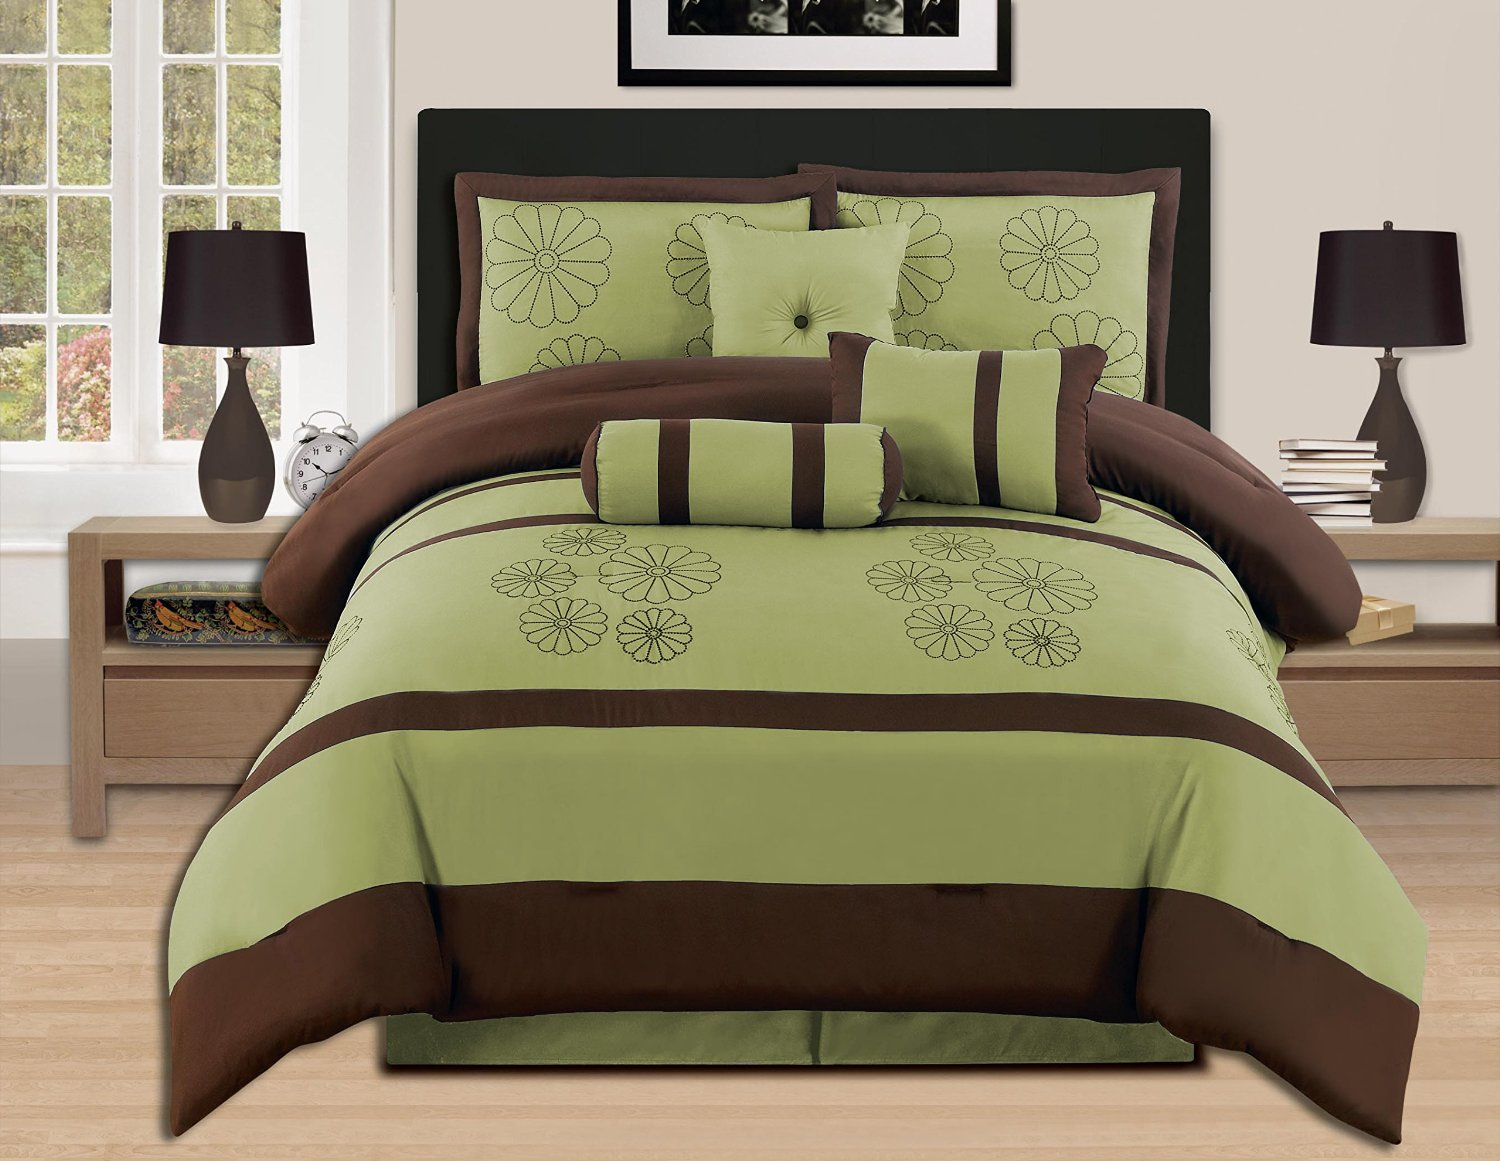 Green bed sheets texture - Olive Green Bedding 7 Pce Olive And Brown Comforter Set